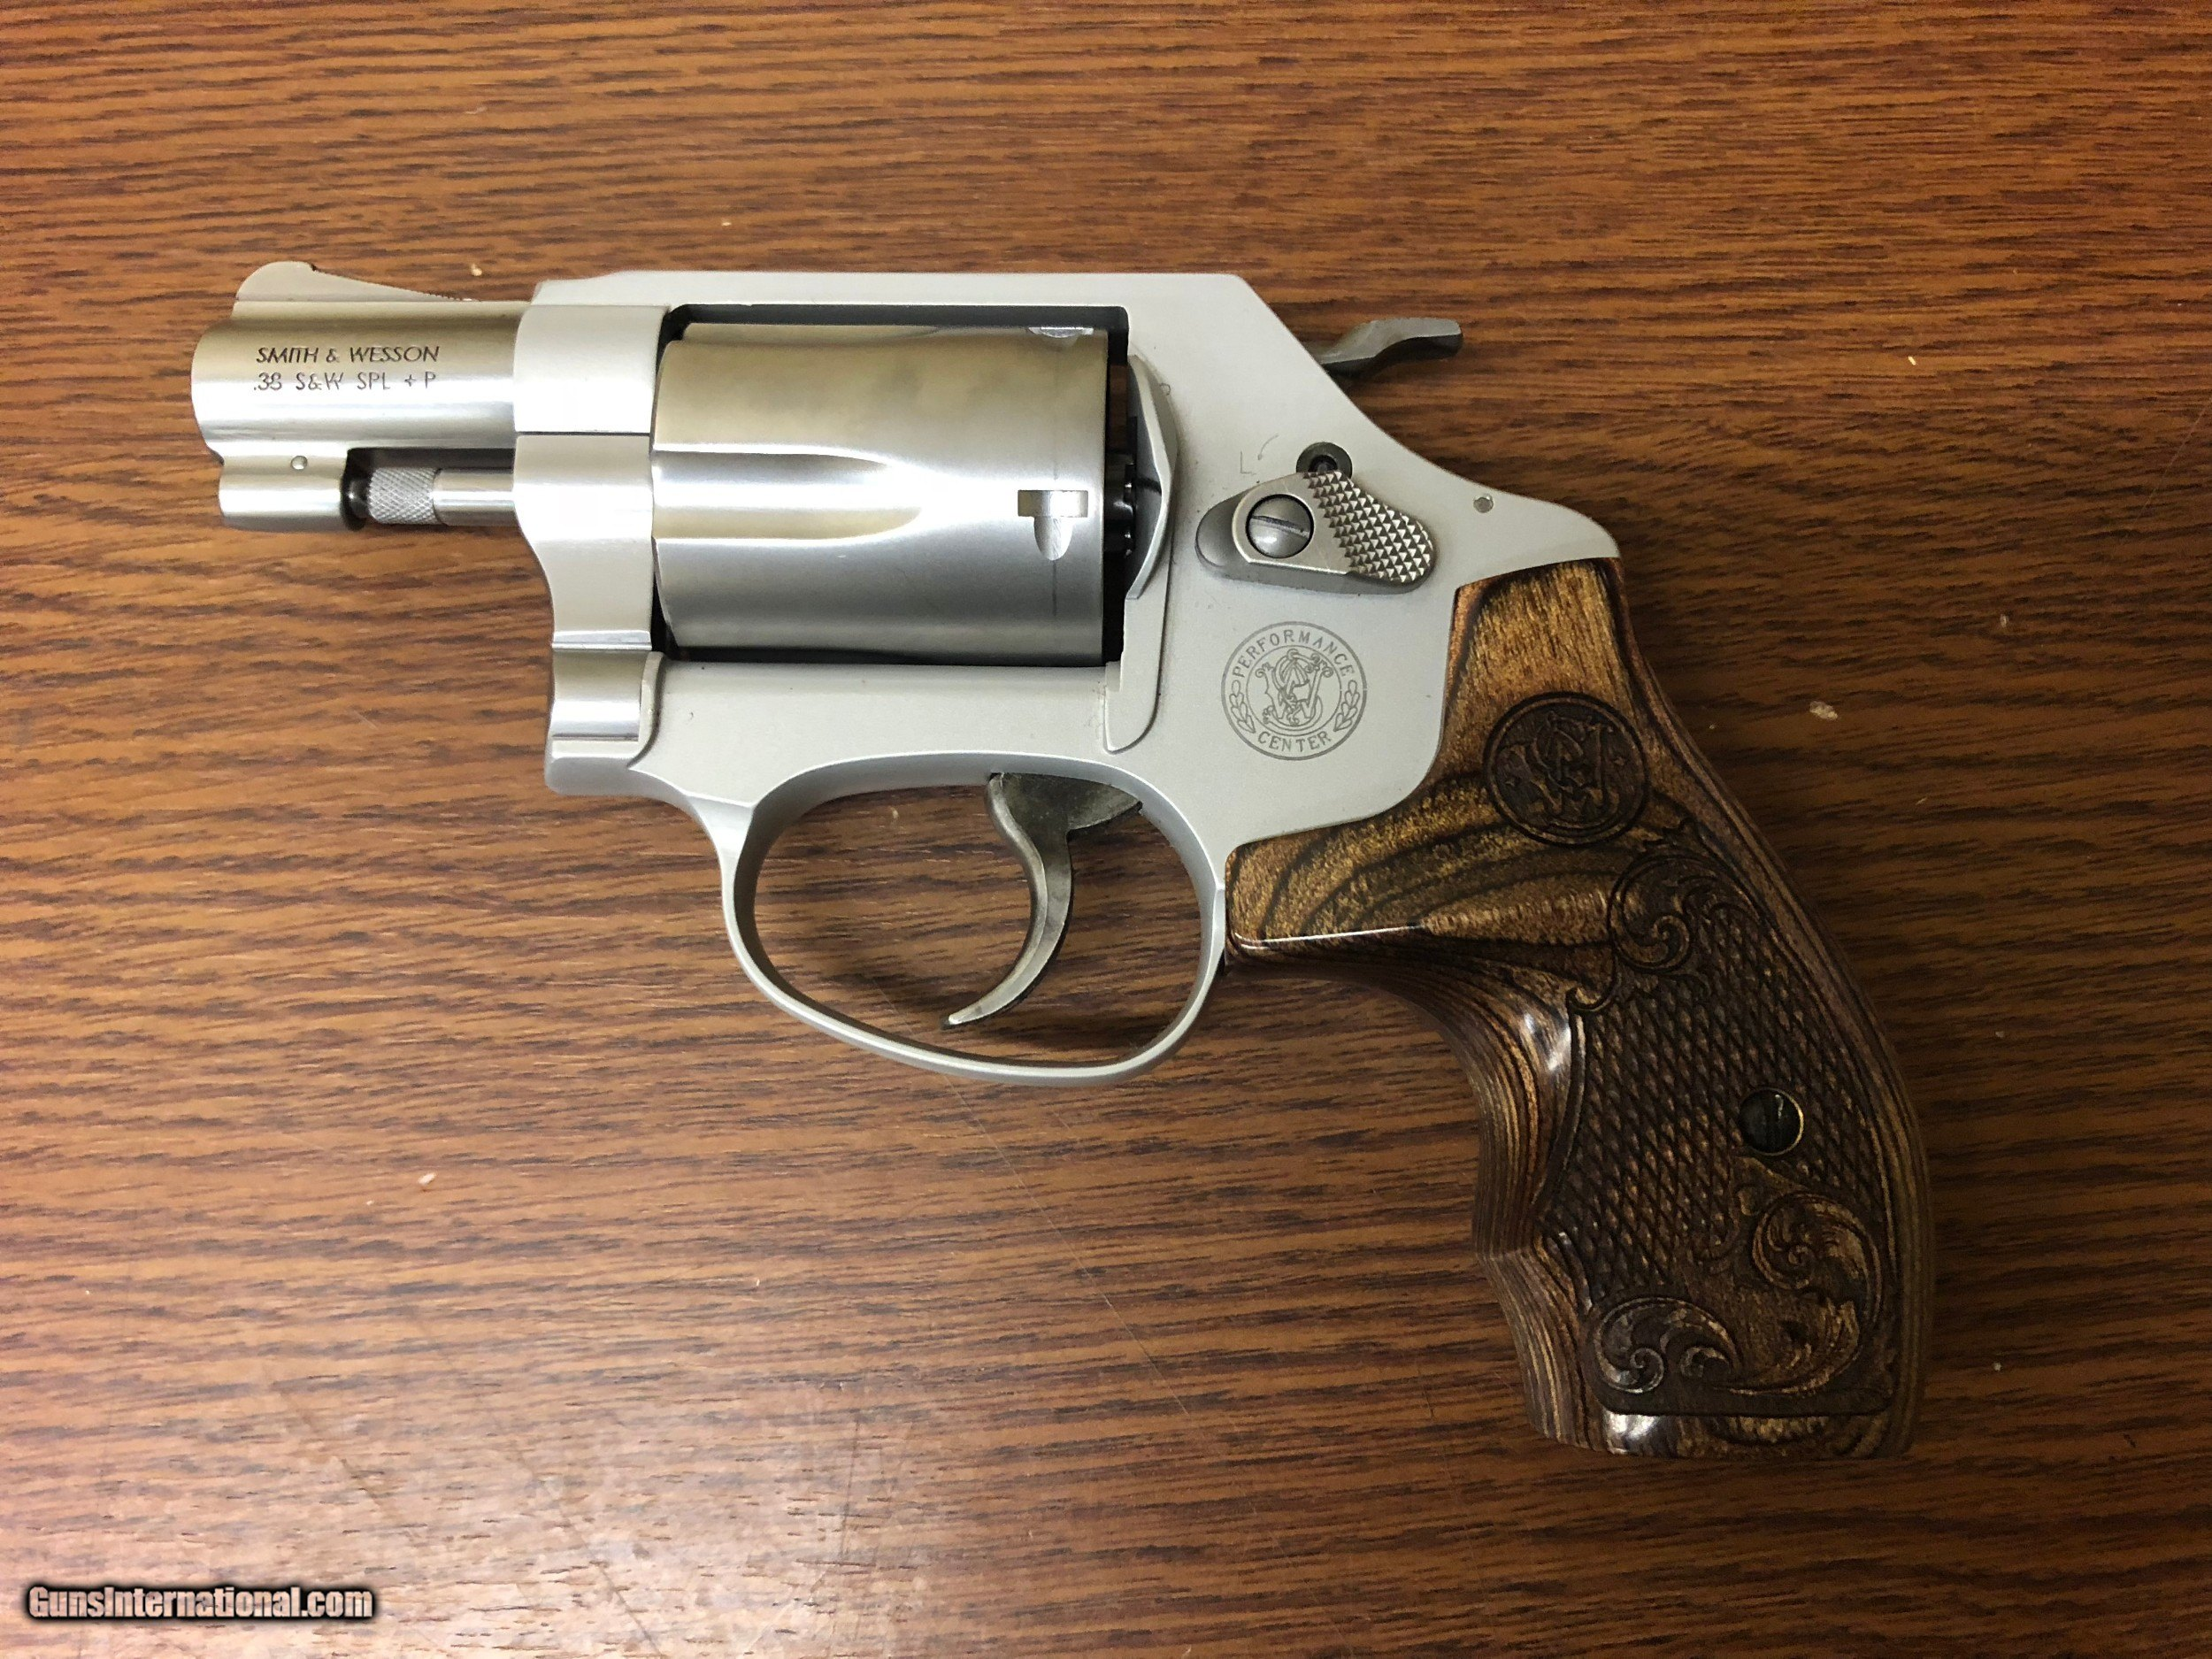 Smith & Wesson 637 Performance Center Revolver 170349, 38 Special - 1 of 5  ...